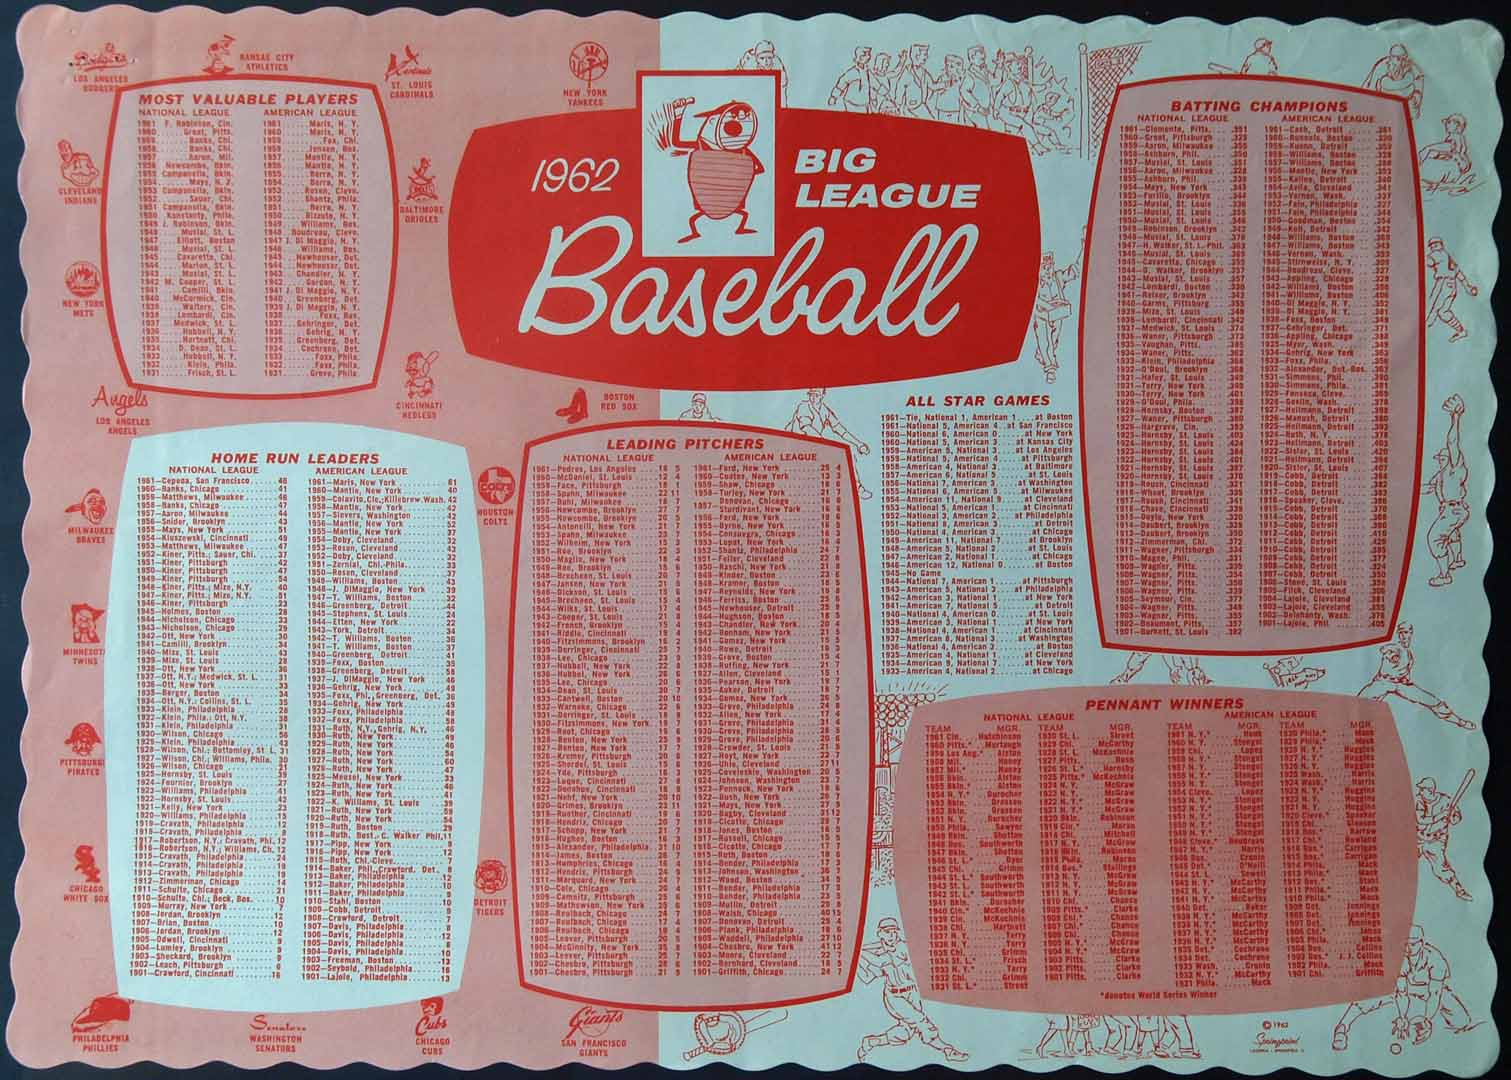 1962 big league baseball